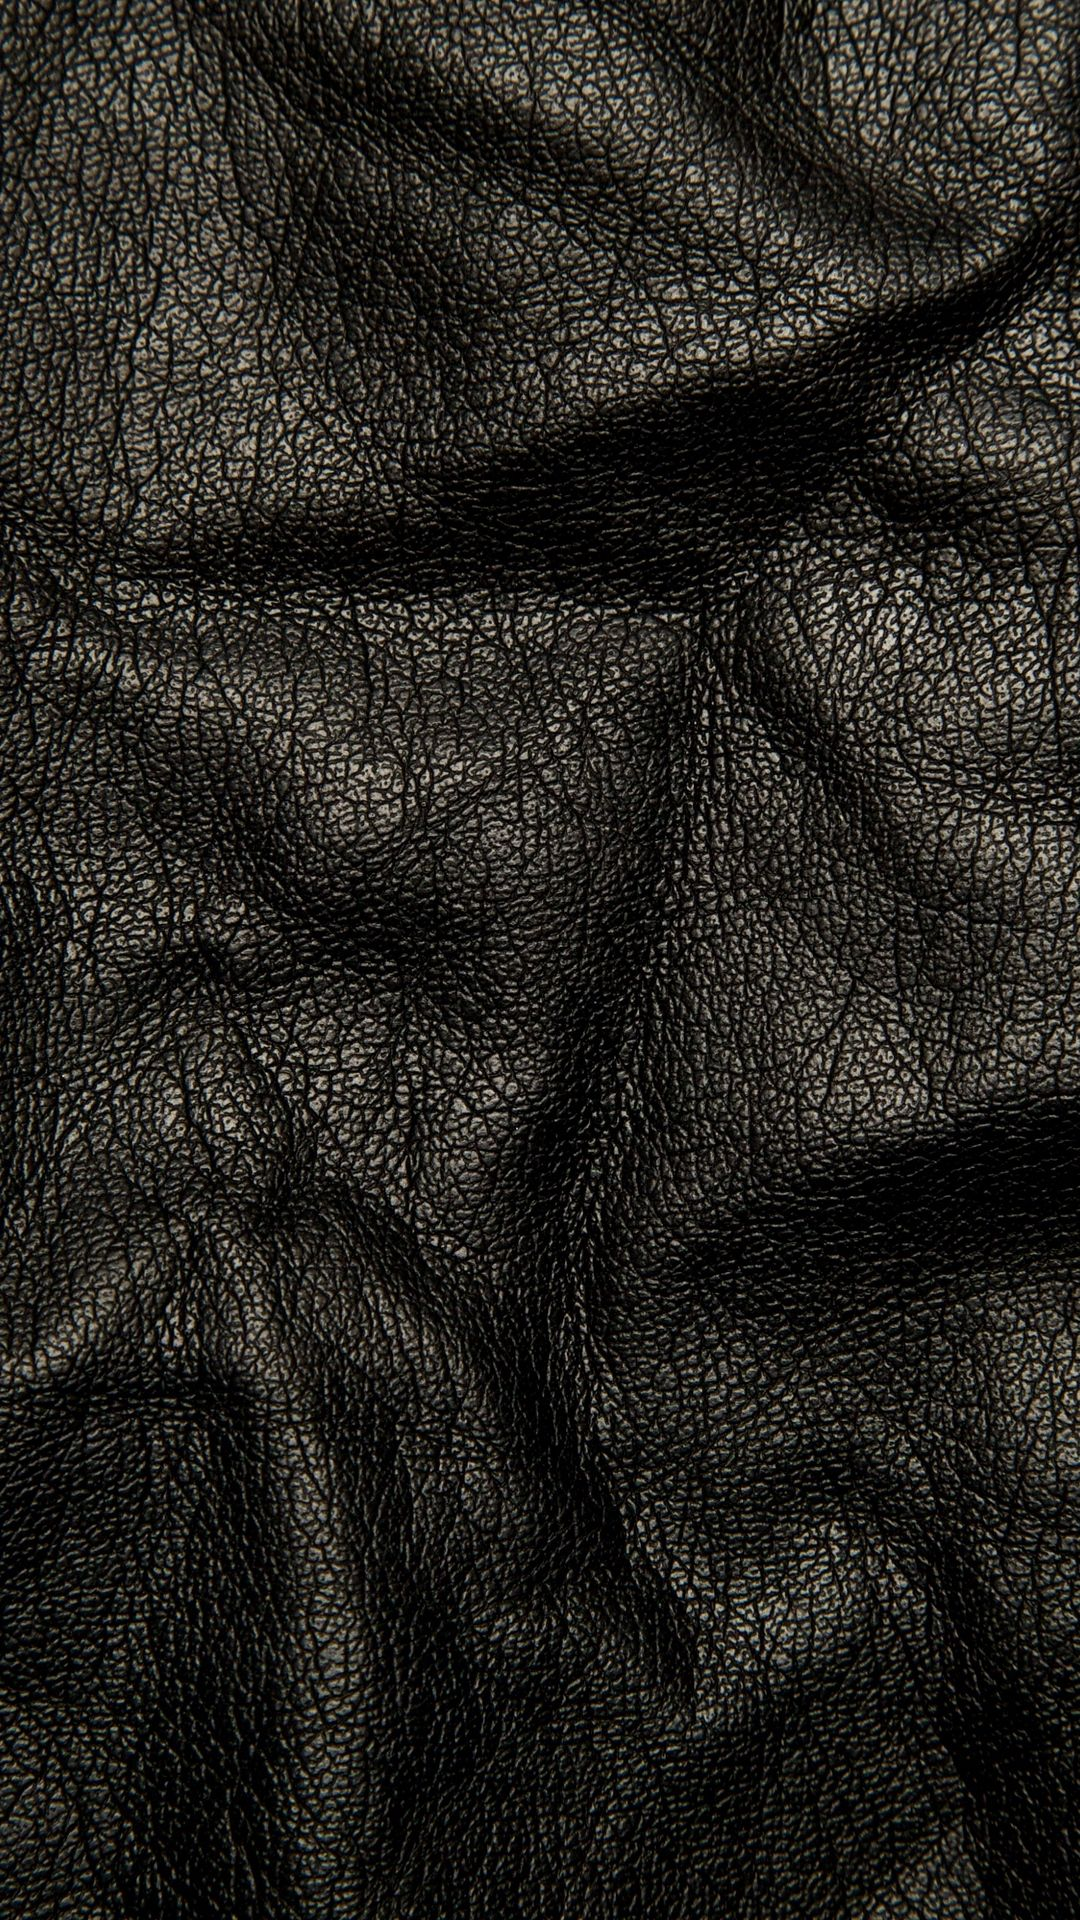 Tap To Download Background Black Leather Textures Wallpaper